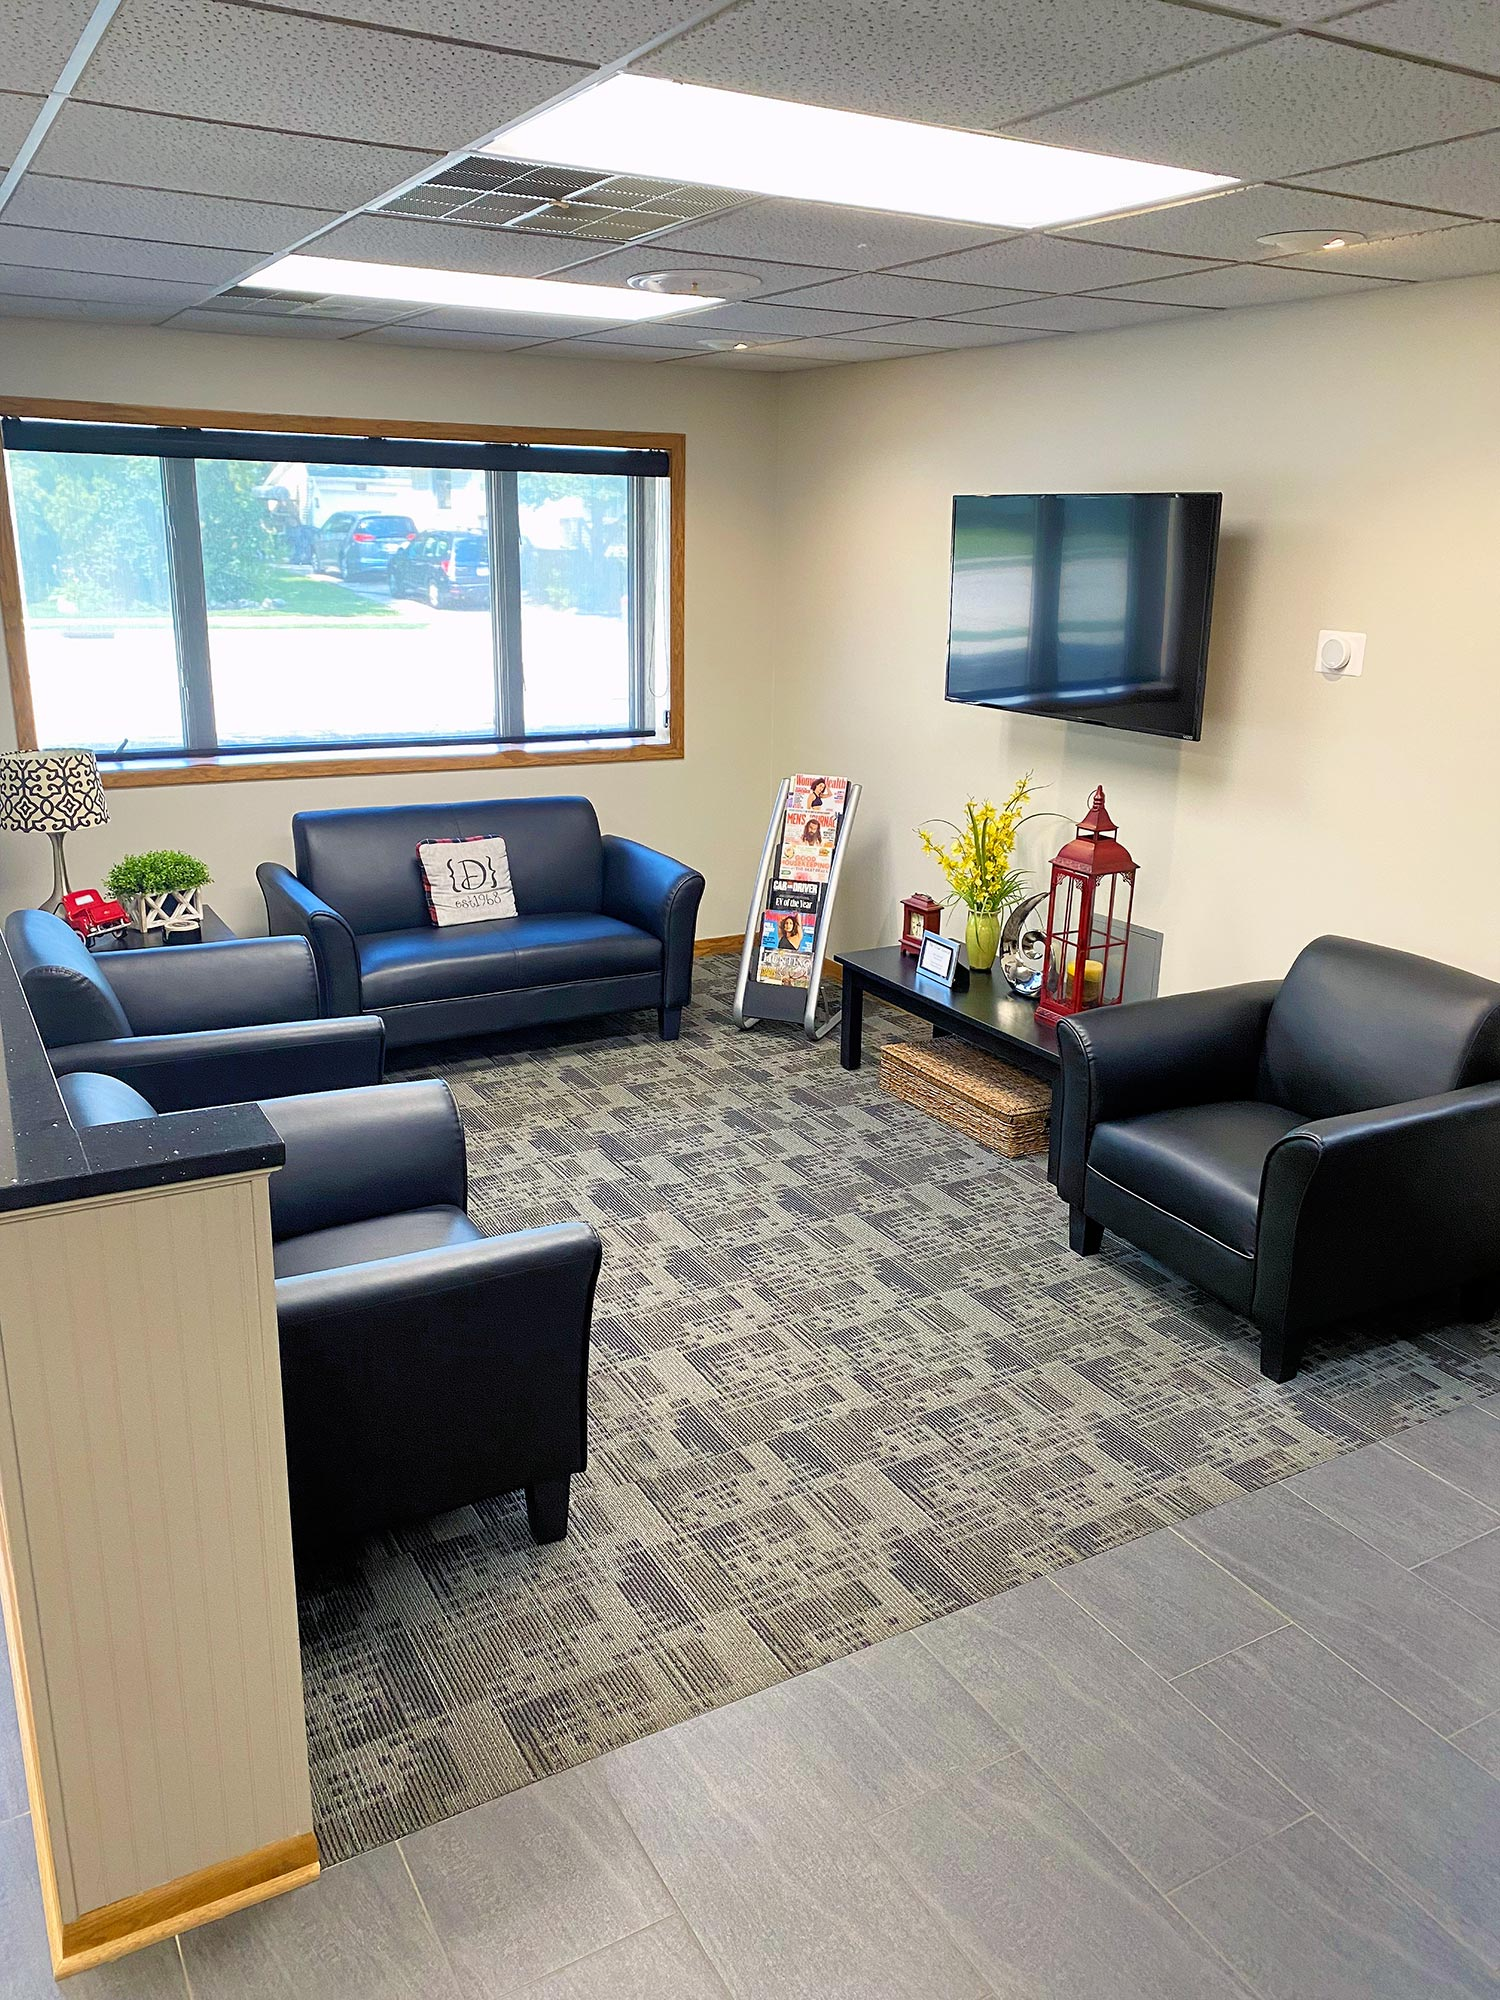 Customer Lounge at Dean's Auto Body and Collision Center in Sheboygan, WI